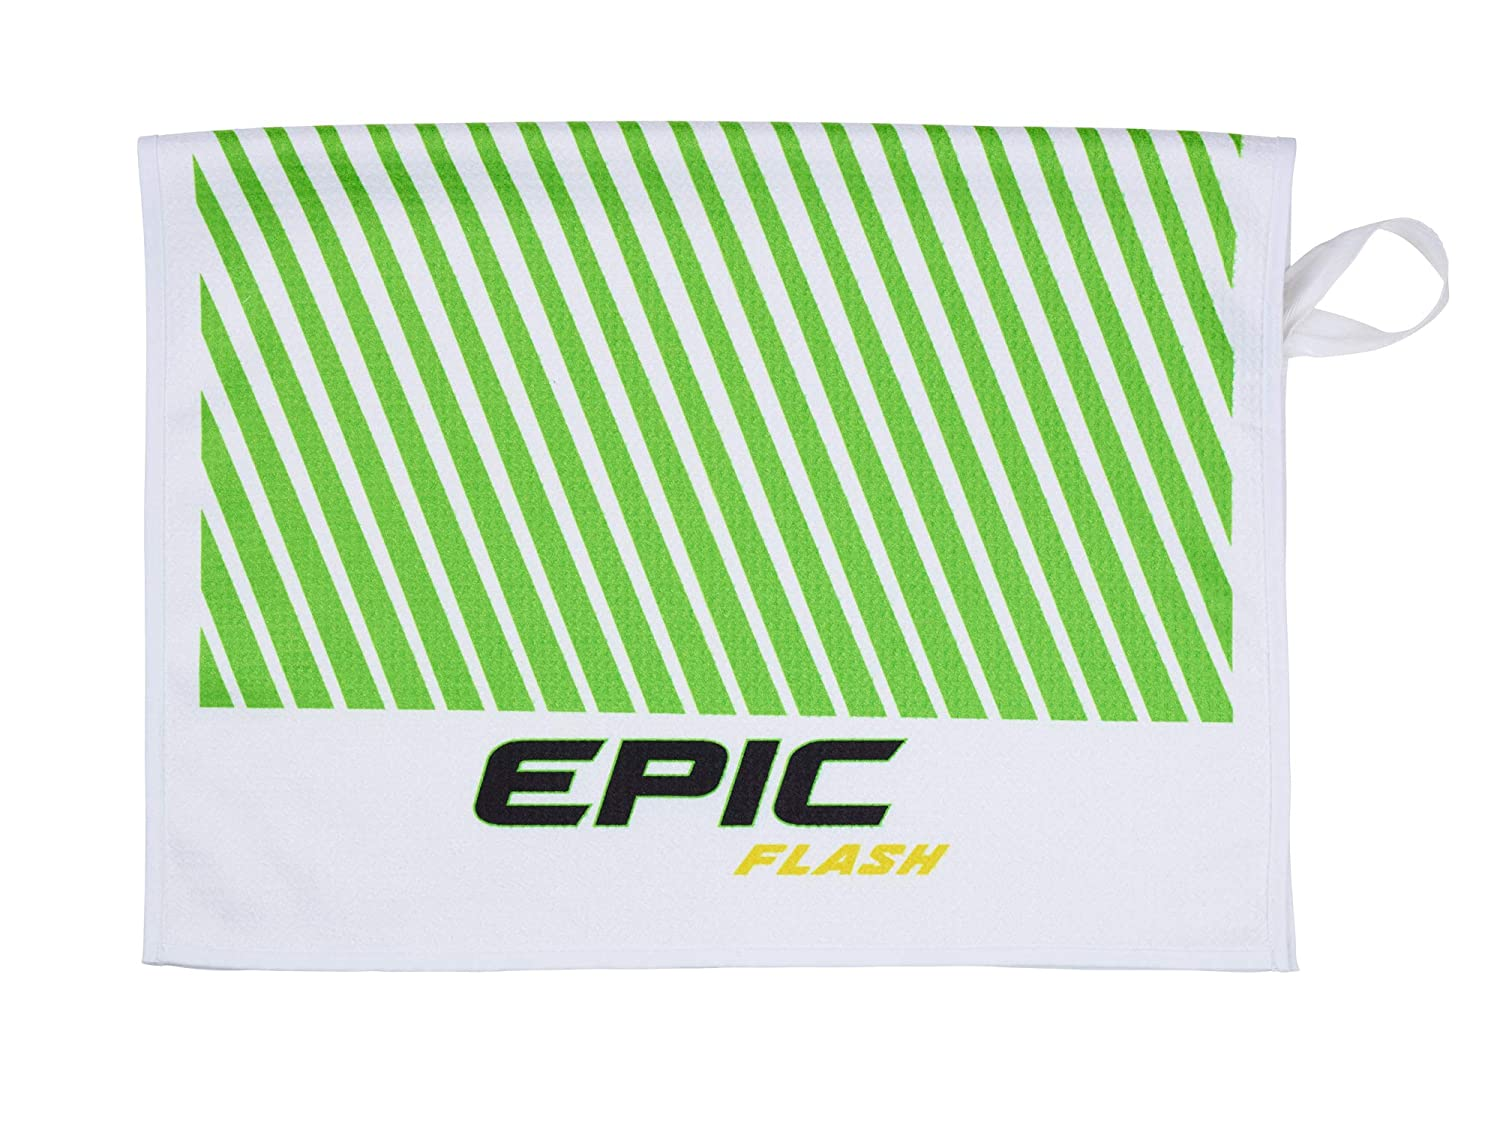 (White/Green/Black) - Callaway Golf 2019 Epic Flash Premium Microfiber Golf Towel 80cm x 50cm   B07M5MF9LC